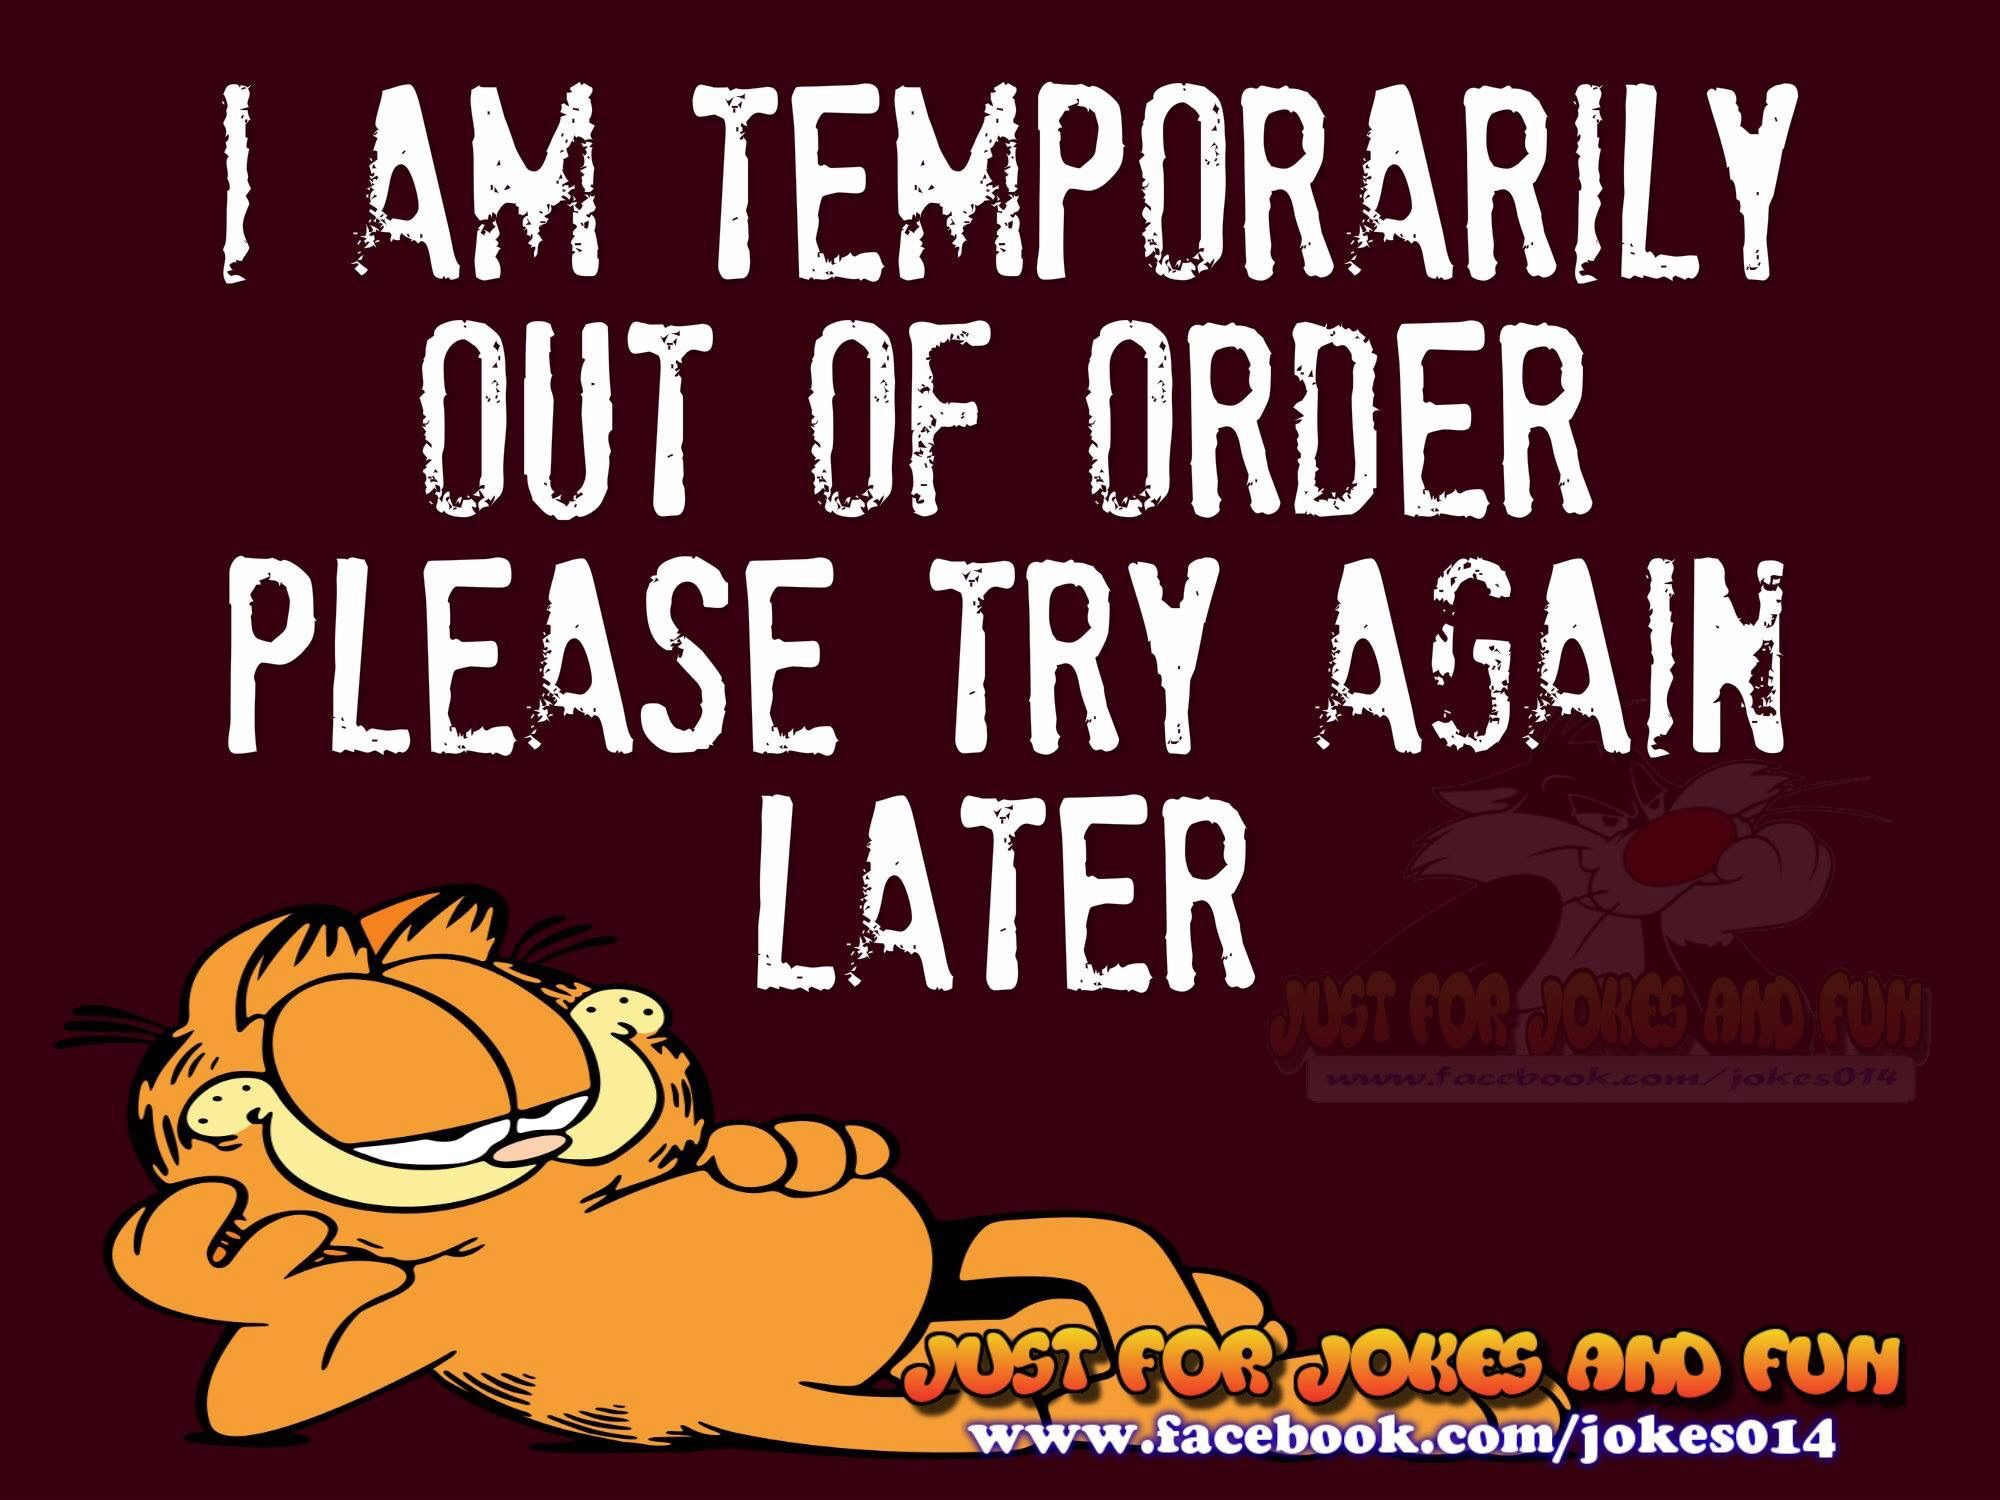 I Am Temporarily Out Of Order Garfield Quotes Funny Cartoons Laughter The Best Medicine